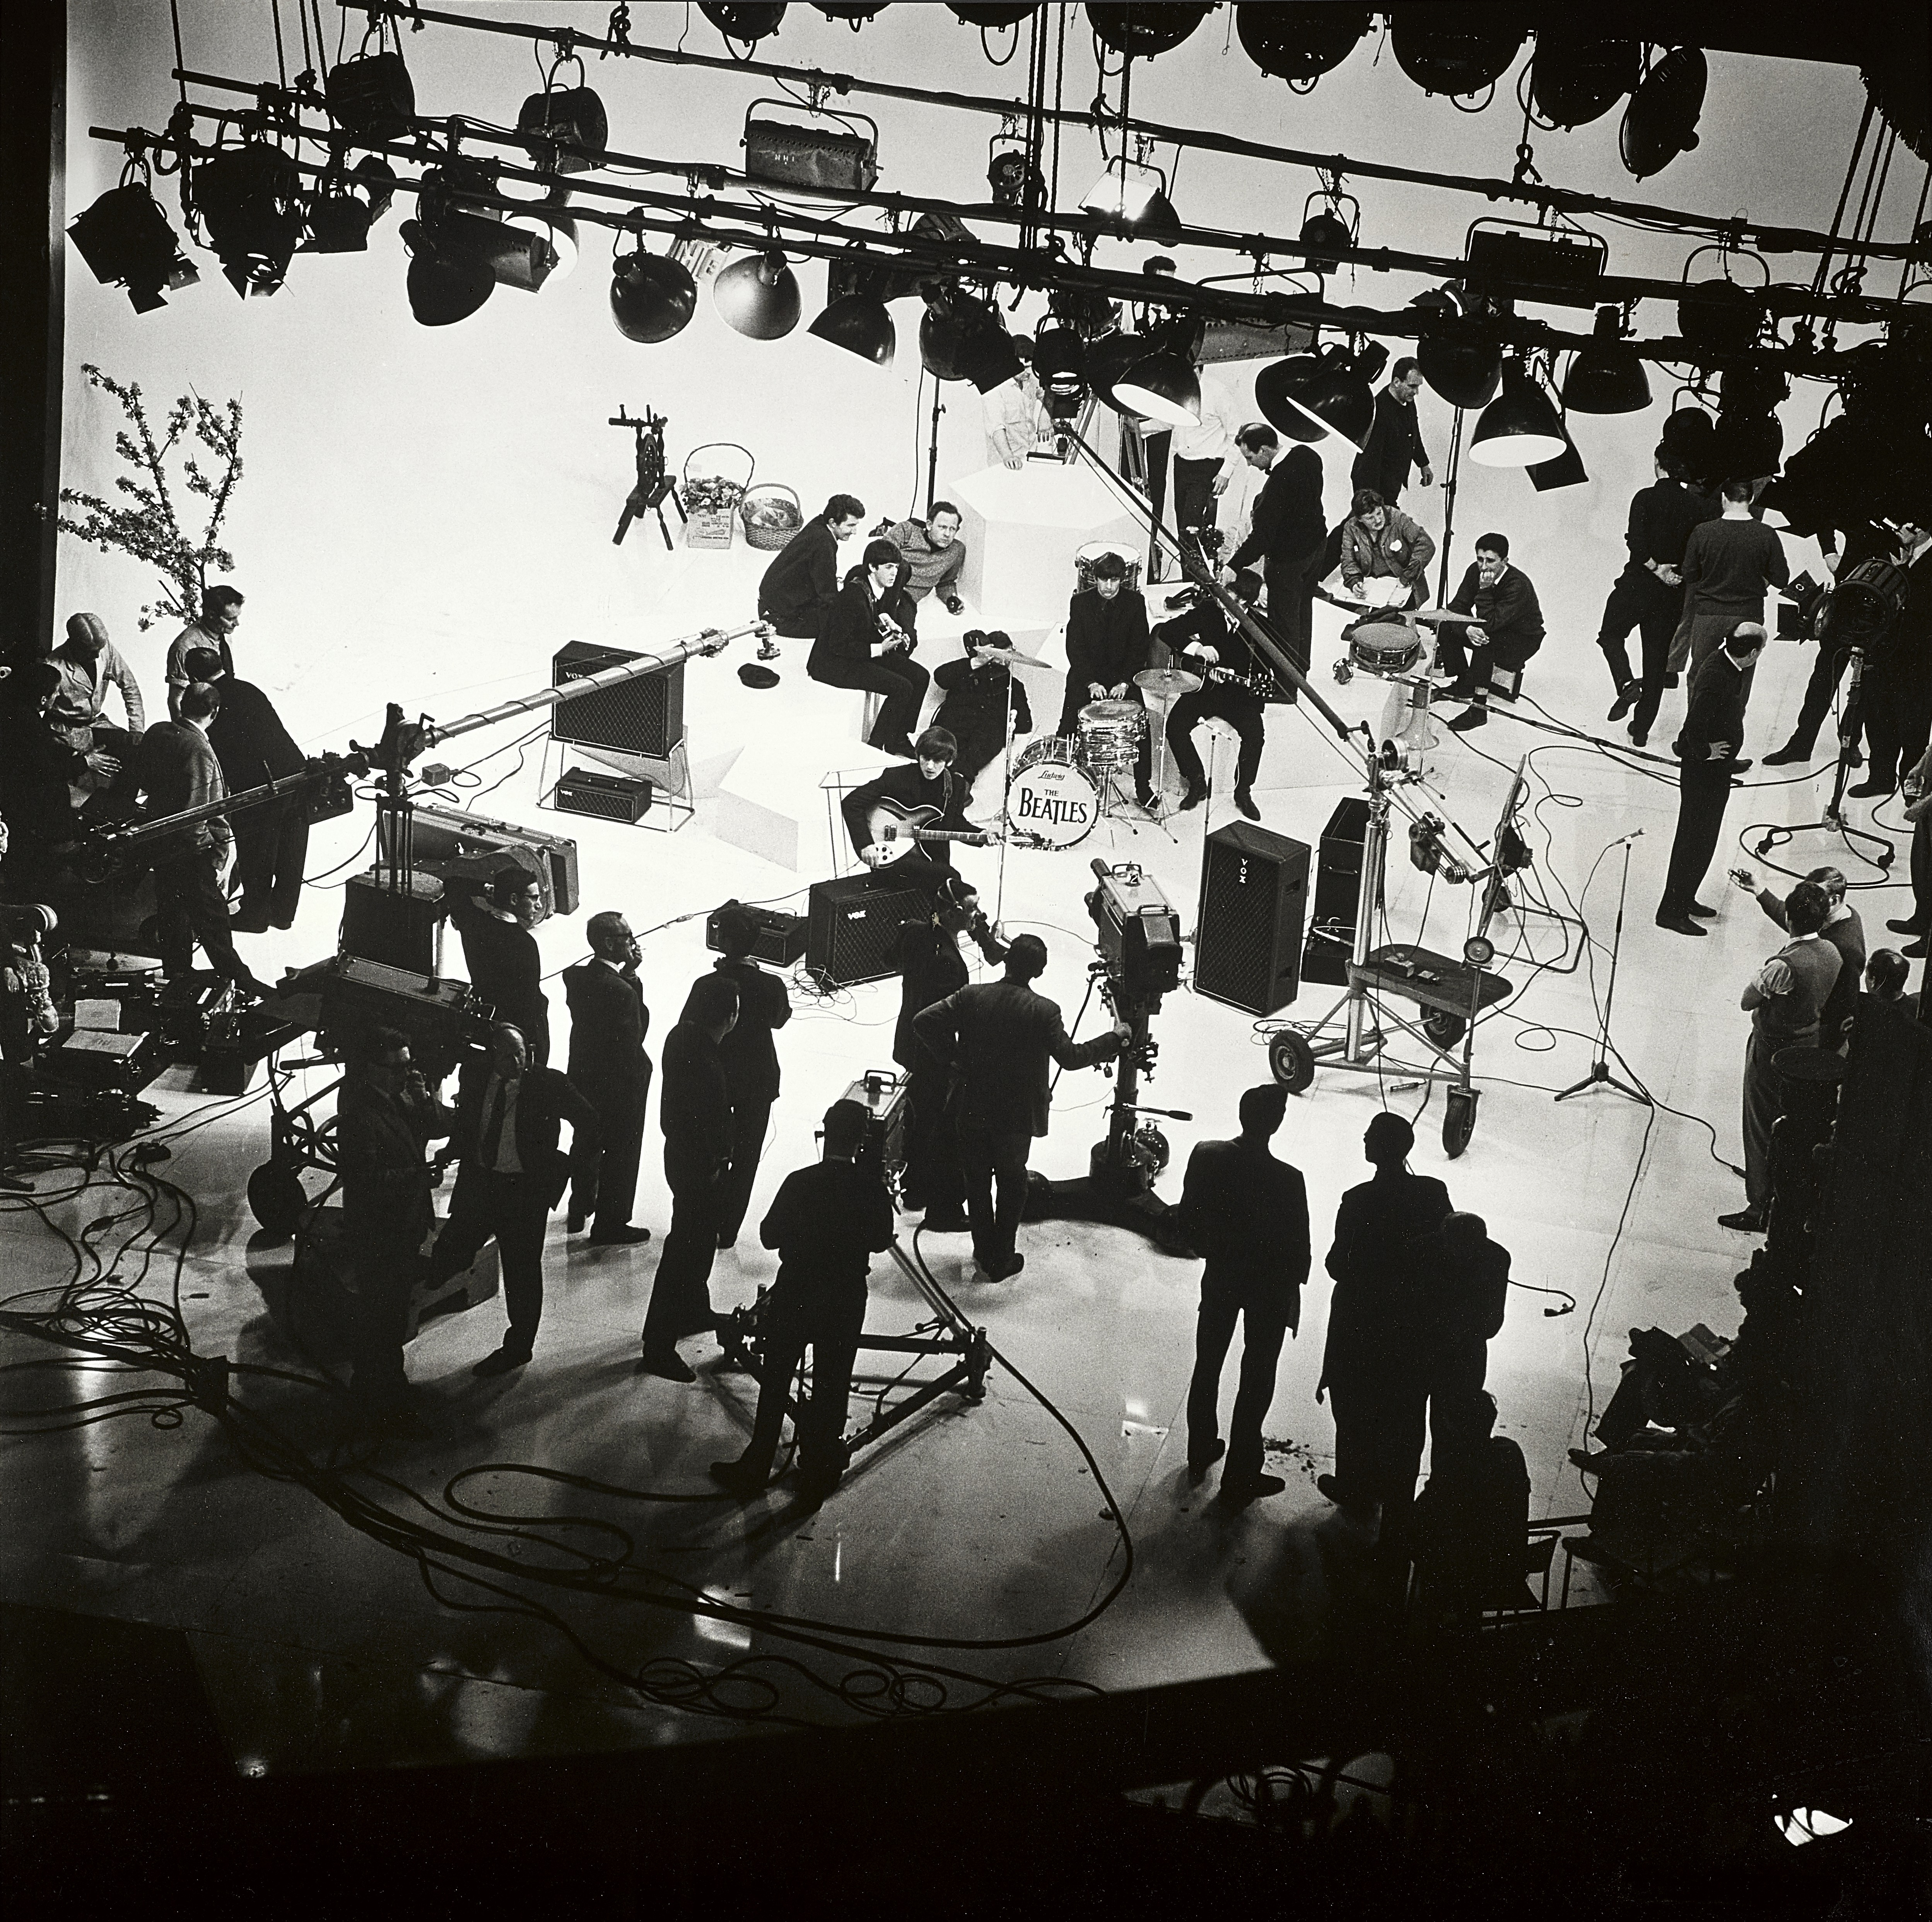 Lot 12 - A Photograph Of The Beatles At La Scala Theatre London On The Set Of A Hard Day's Night 1964